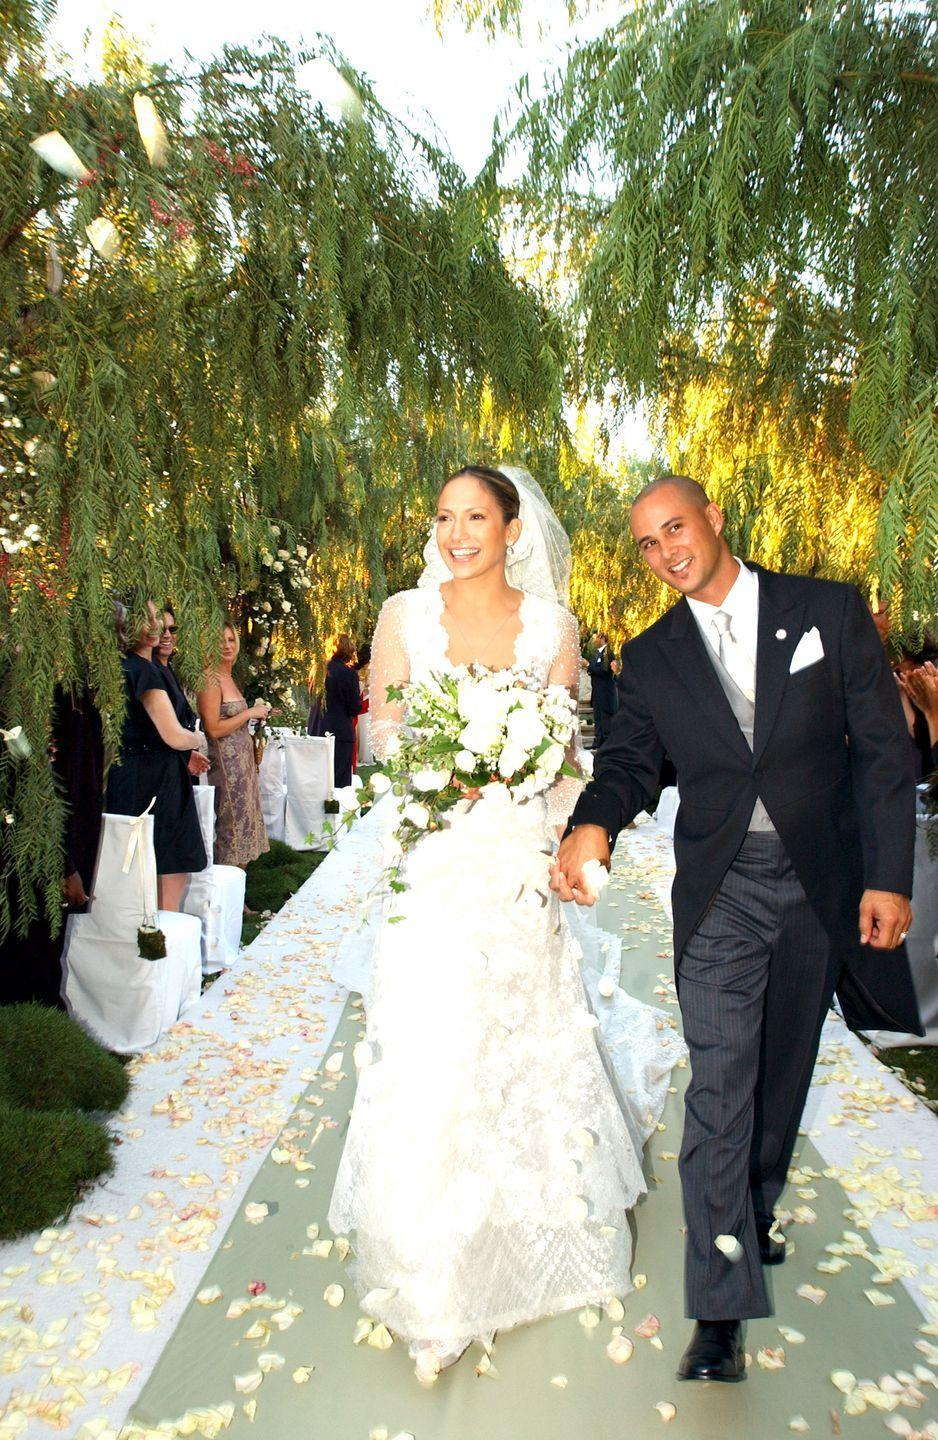 "<p>After meeting in late 2000, Jennifer Lopez and Cris Judd, a former backup dancer, married in a private residence in Calabasas, California, on September 29, 2001. The two had met in Spain in late 2000, when Judd was hired to direct her music video for ""Love Don't Cost a Thing."" They divorced in June 2002.</p>"